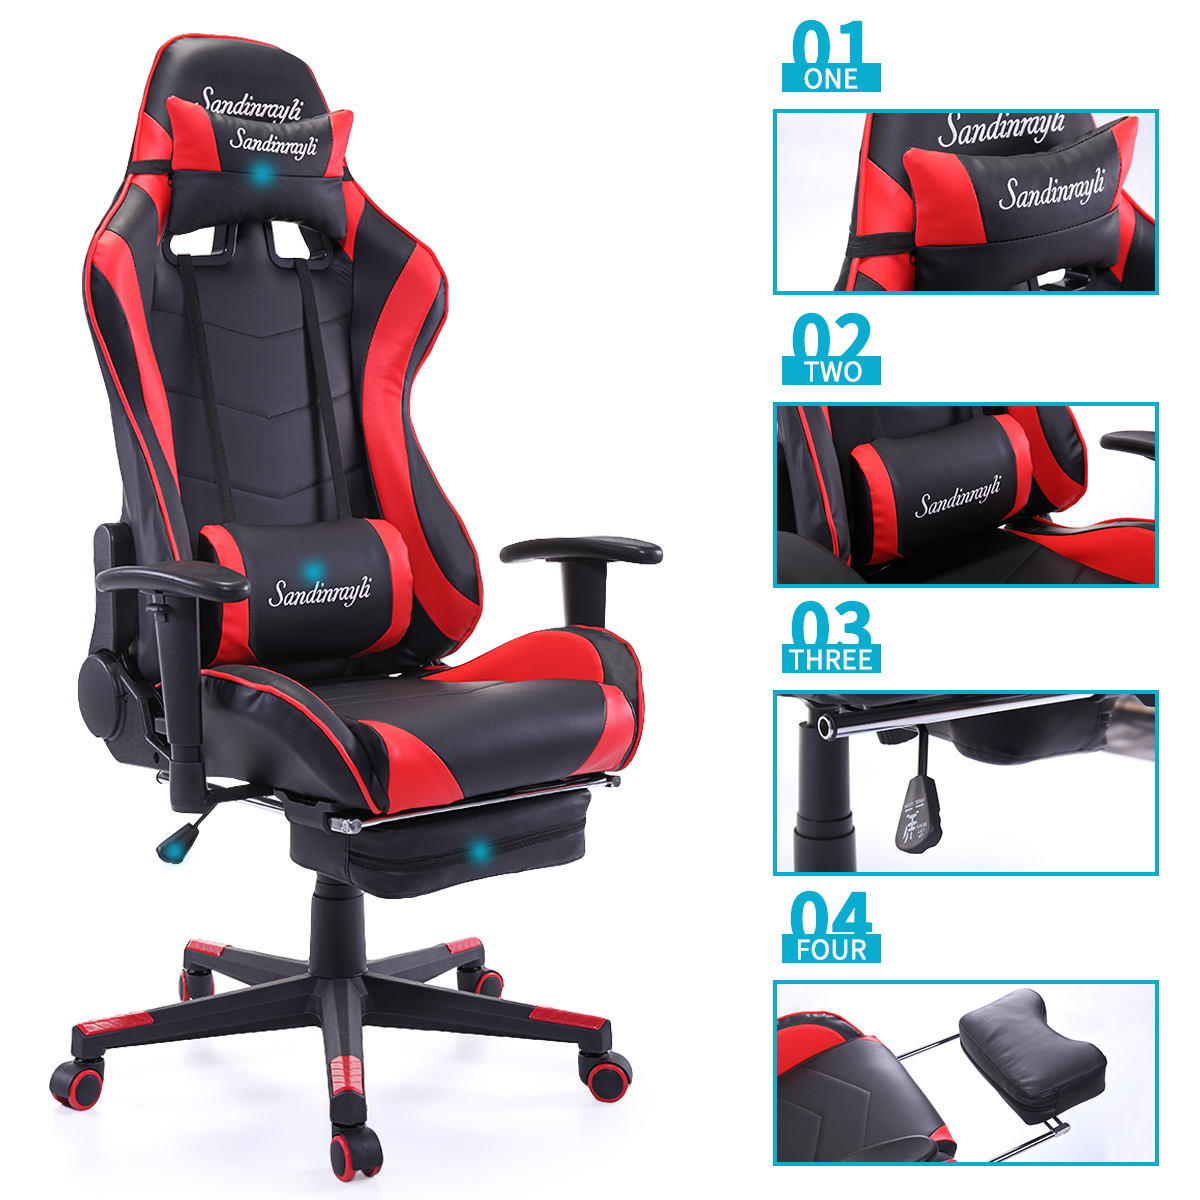 Jaxpety Red Racing Chair Ergonomic High Back Office Desk Chair Swivel PC Gaming Chair w/Lumbar Support &Footrest